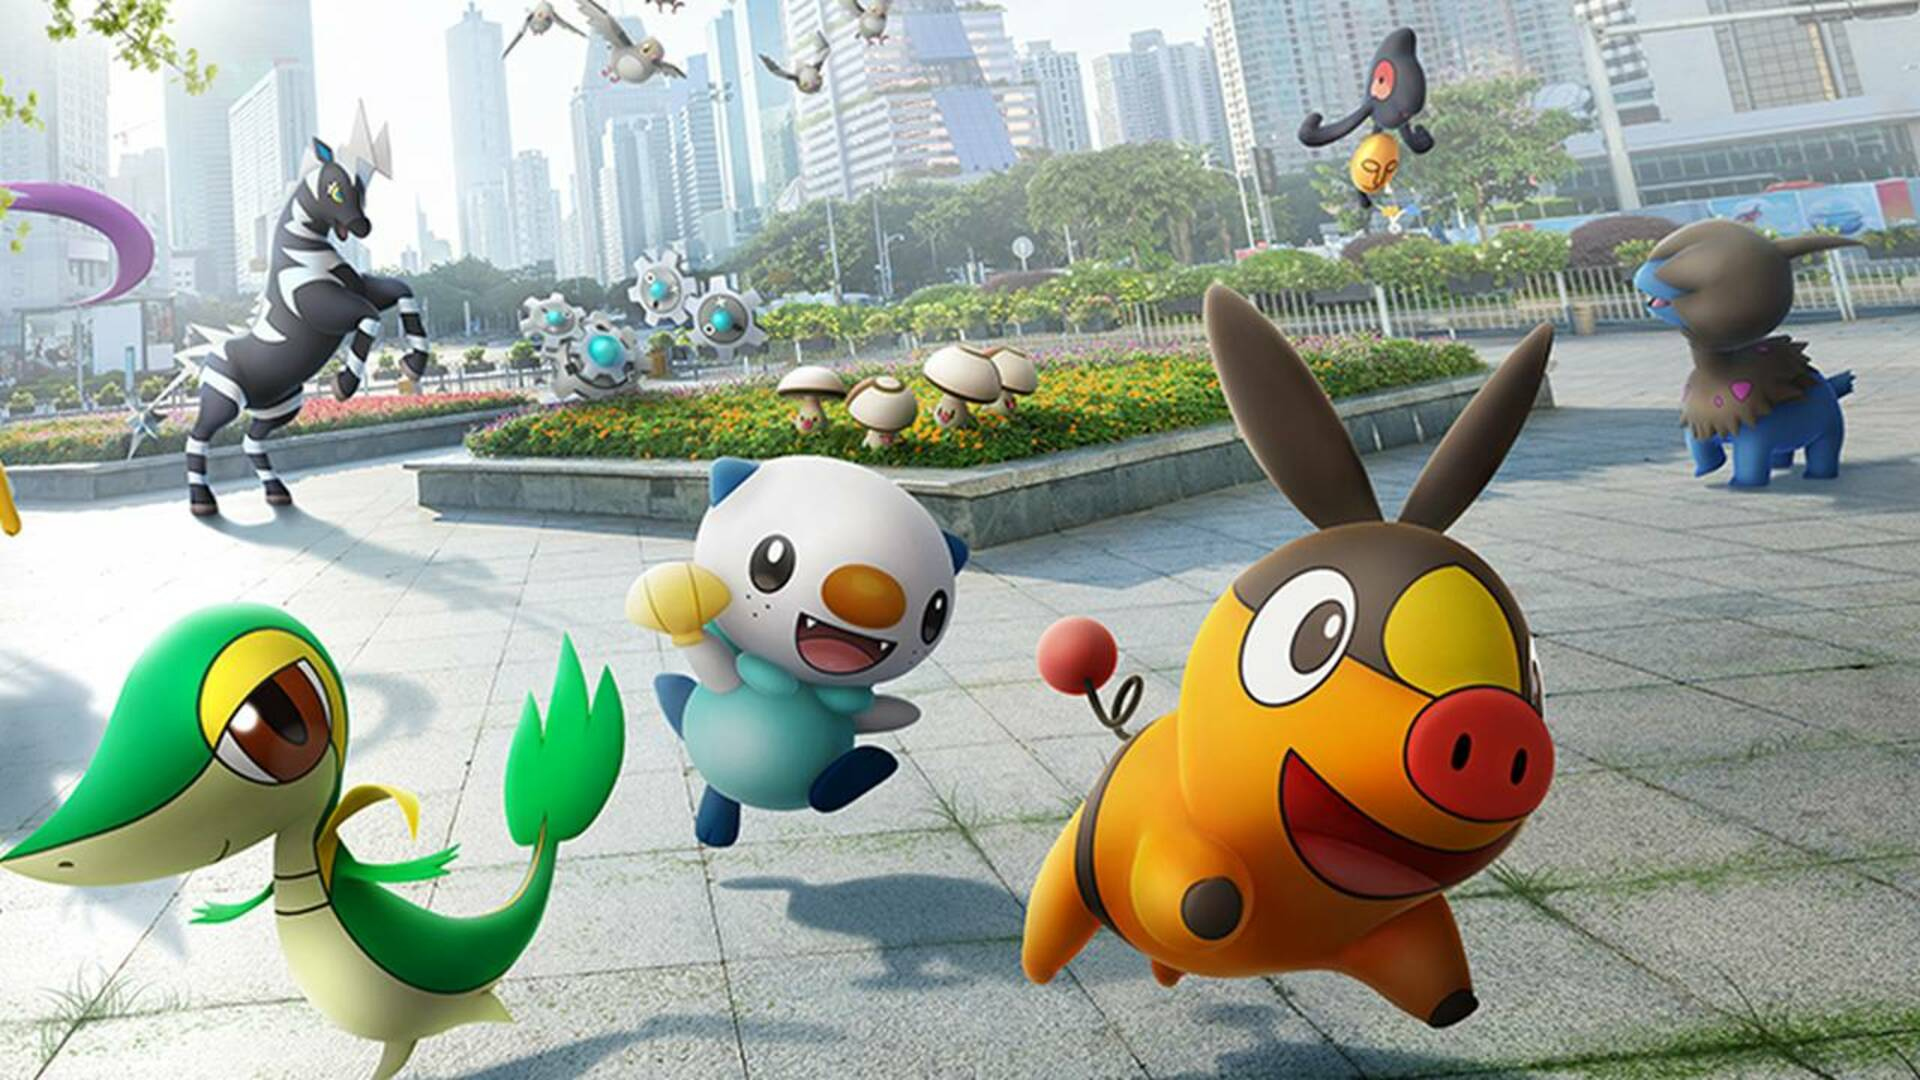 Pokemon Go Players Will Soon Be Able to Nominate and Evaluate Their Local Stops With a New Tool